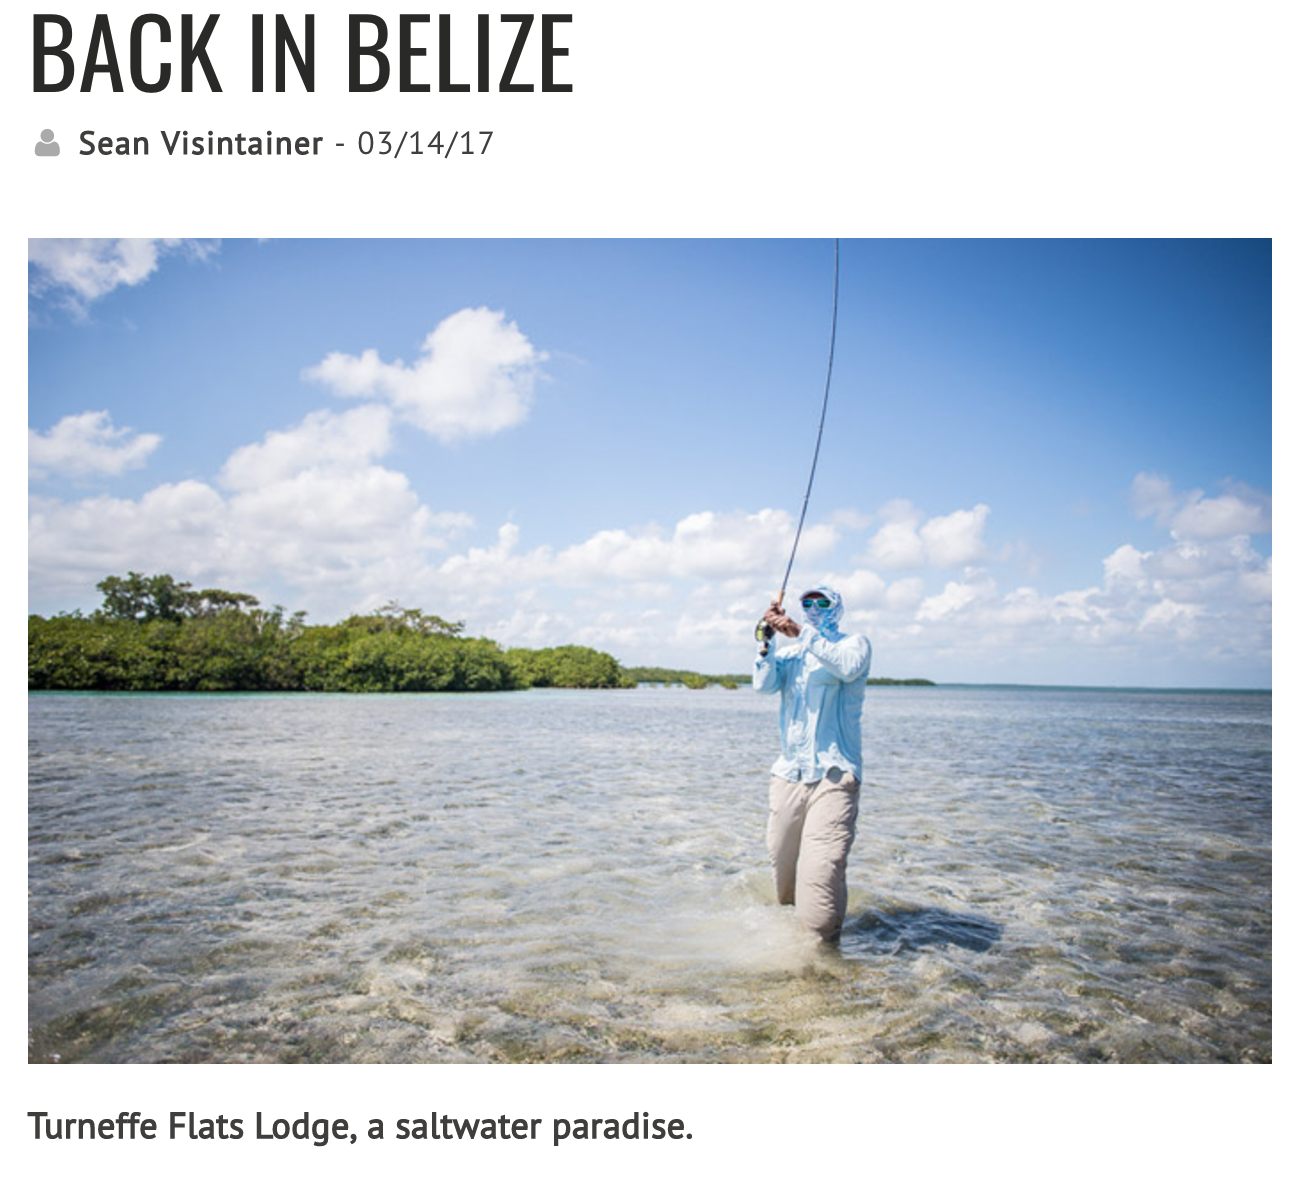 It had been almost 8 years since I've fly fished in Belize. In 2006 the Silver Bow did it's first hosted trip to the island of San Pedro, a small tourist location just a short twenty min flight from Belize City.  Read Further.... https://www.silverbowflyshop.com/blog/back-in-belize/